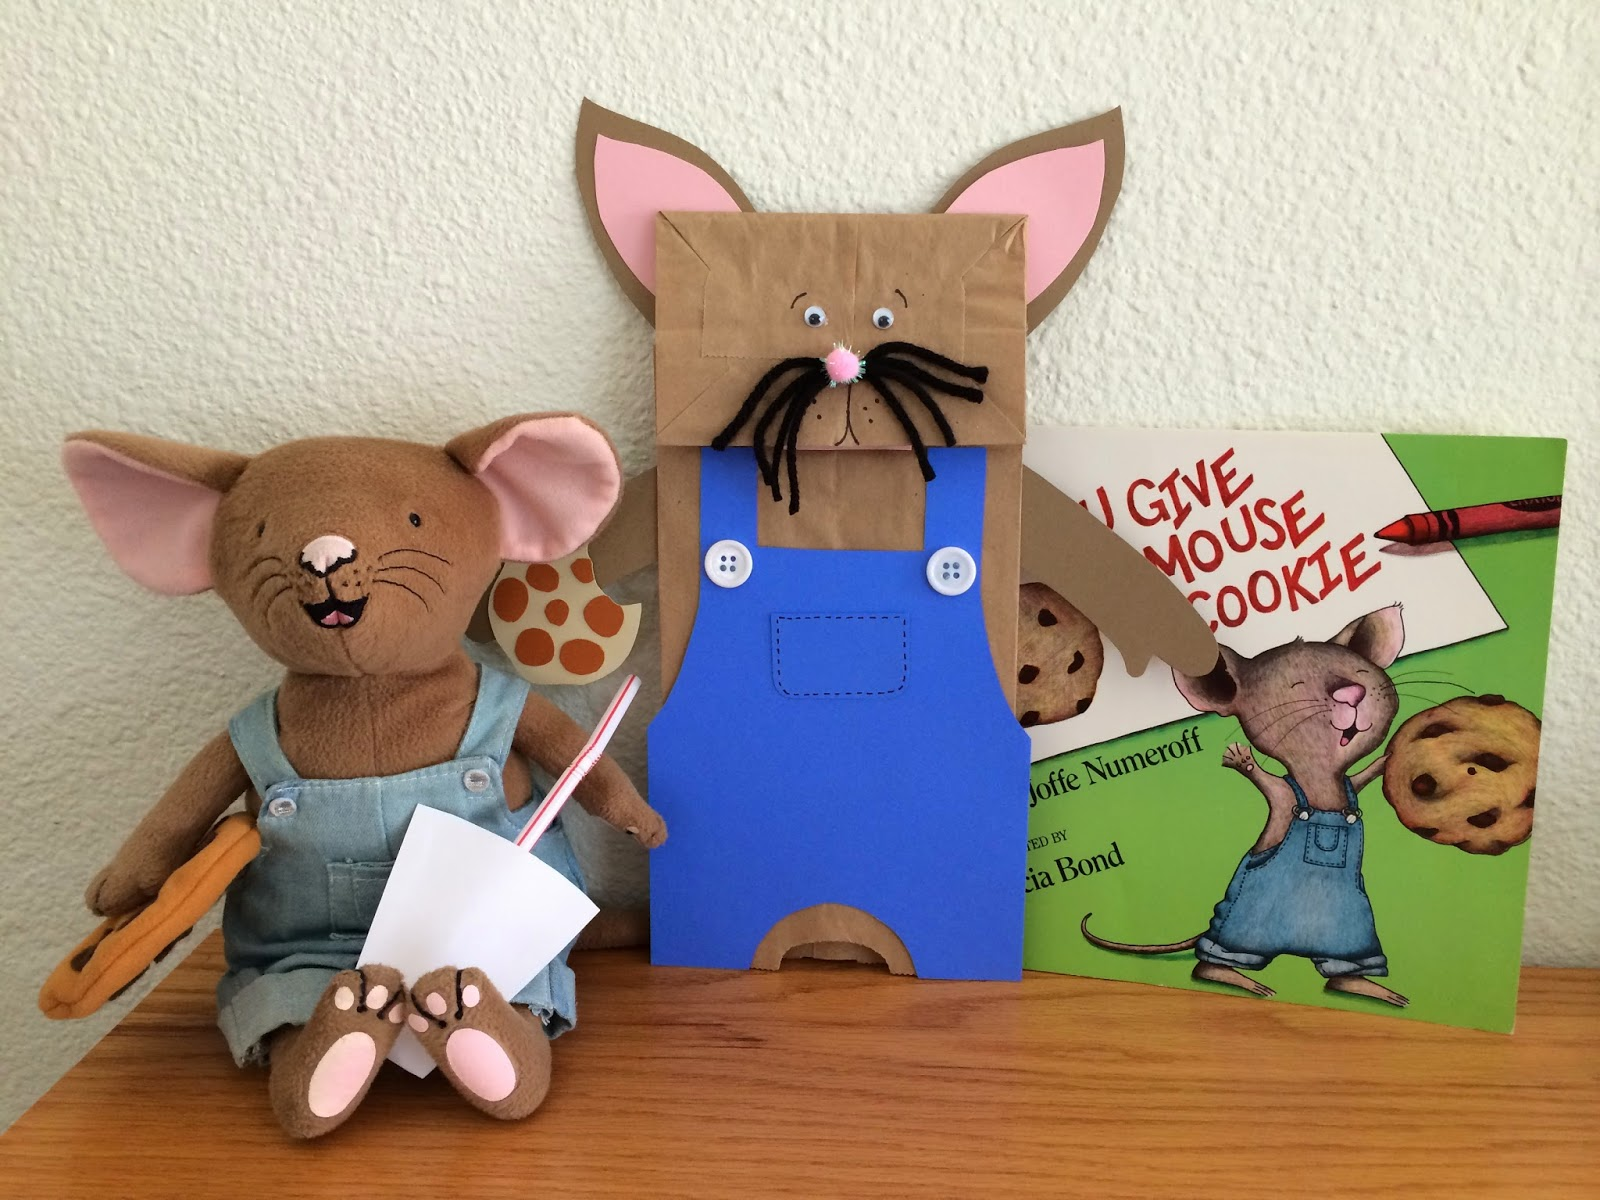 Kathy S Angelnik Designs Amp Art Project Ideas If You Give A Mouse A Cookie Mouse Puppet Art